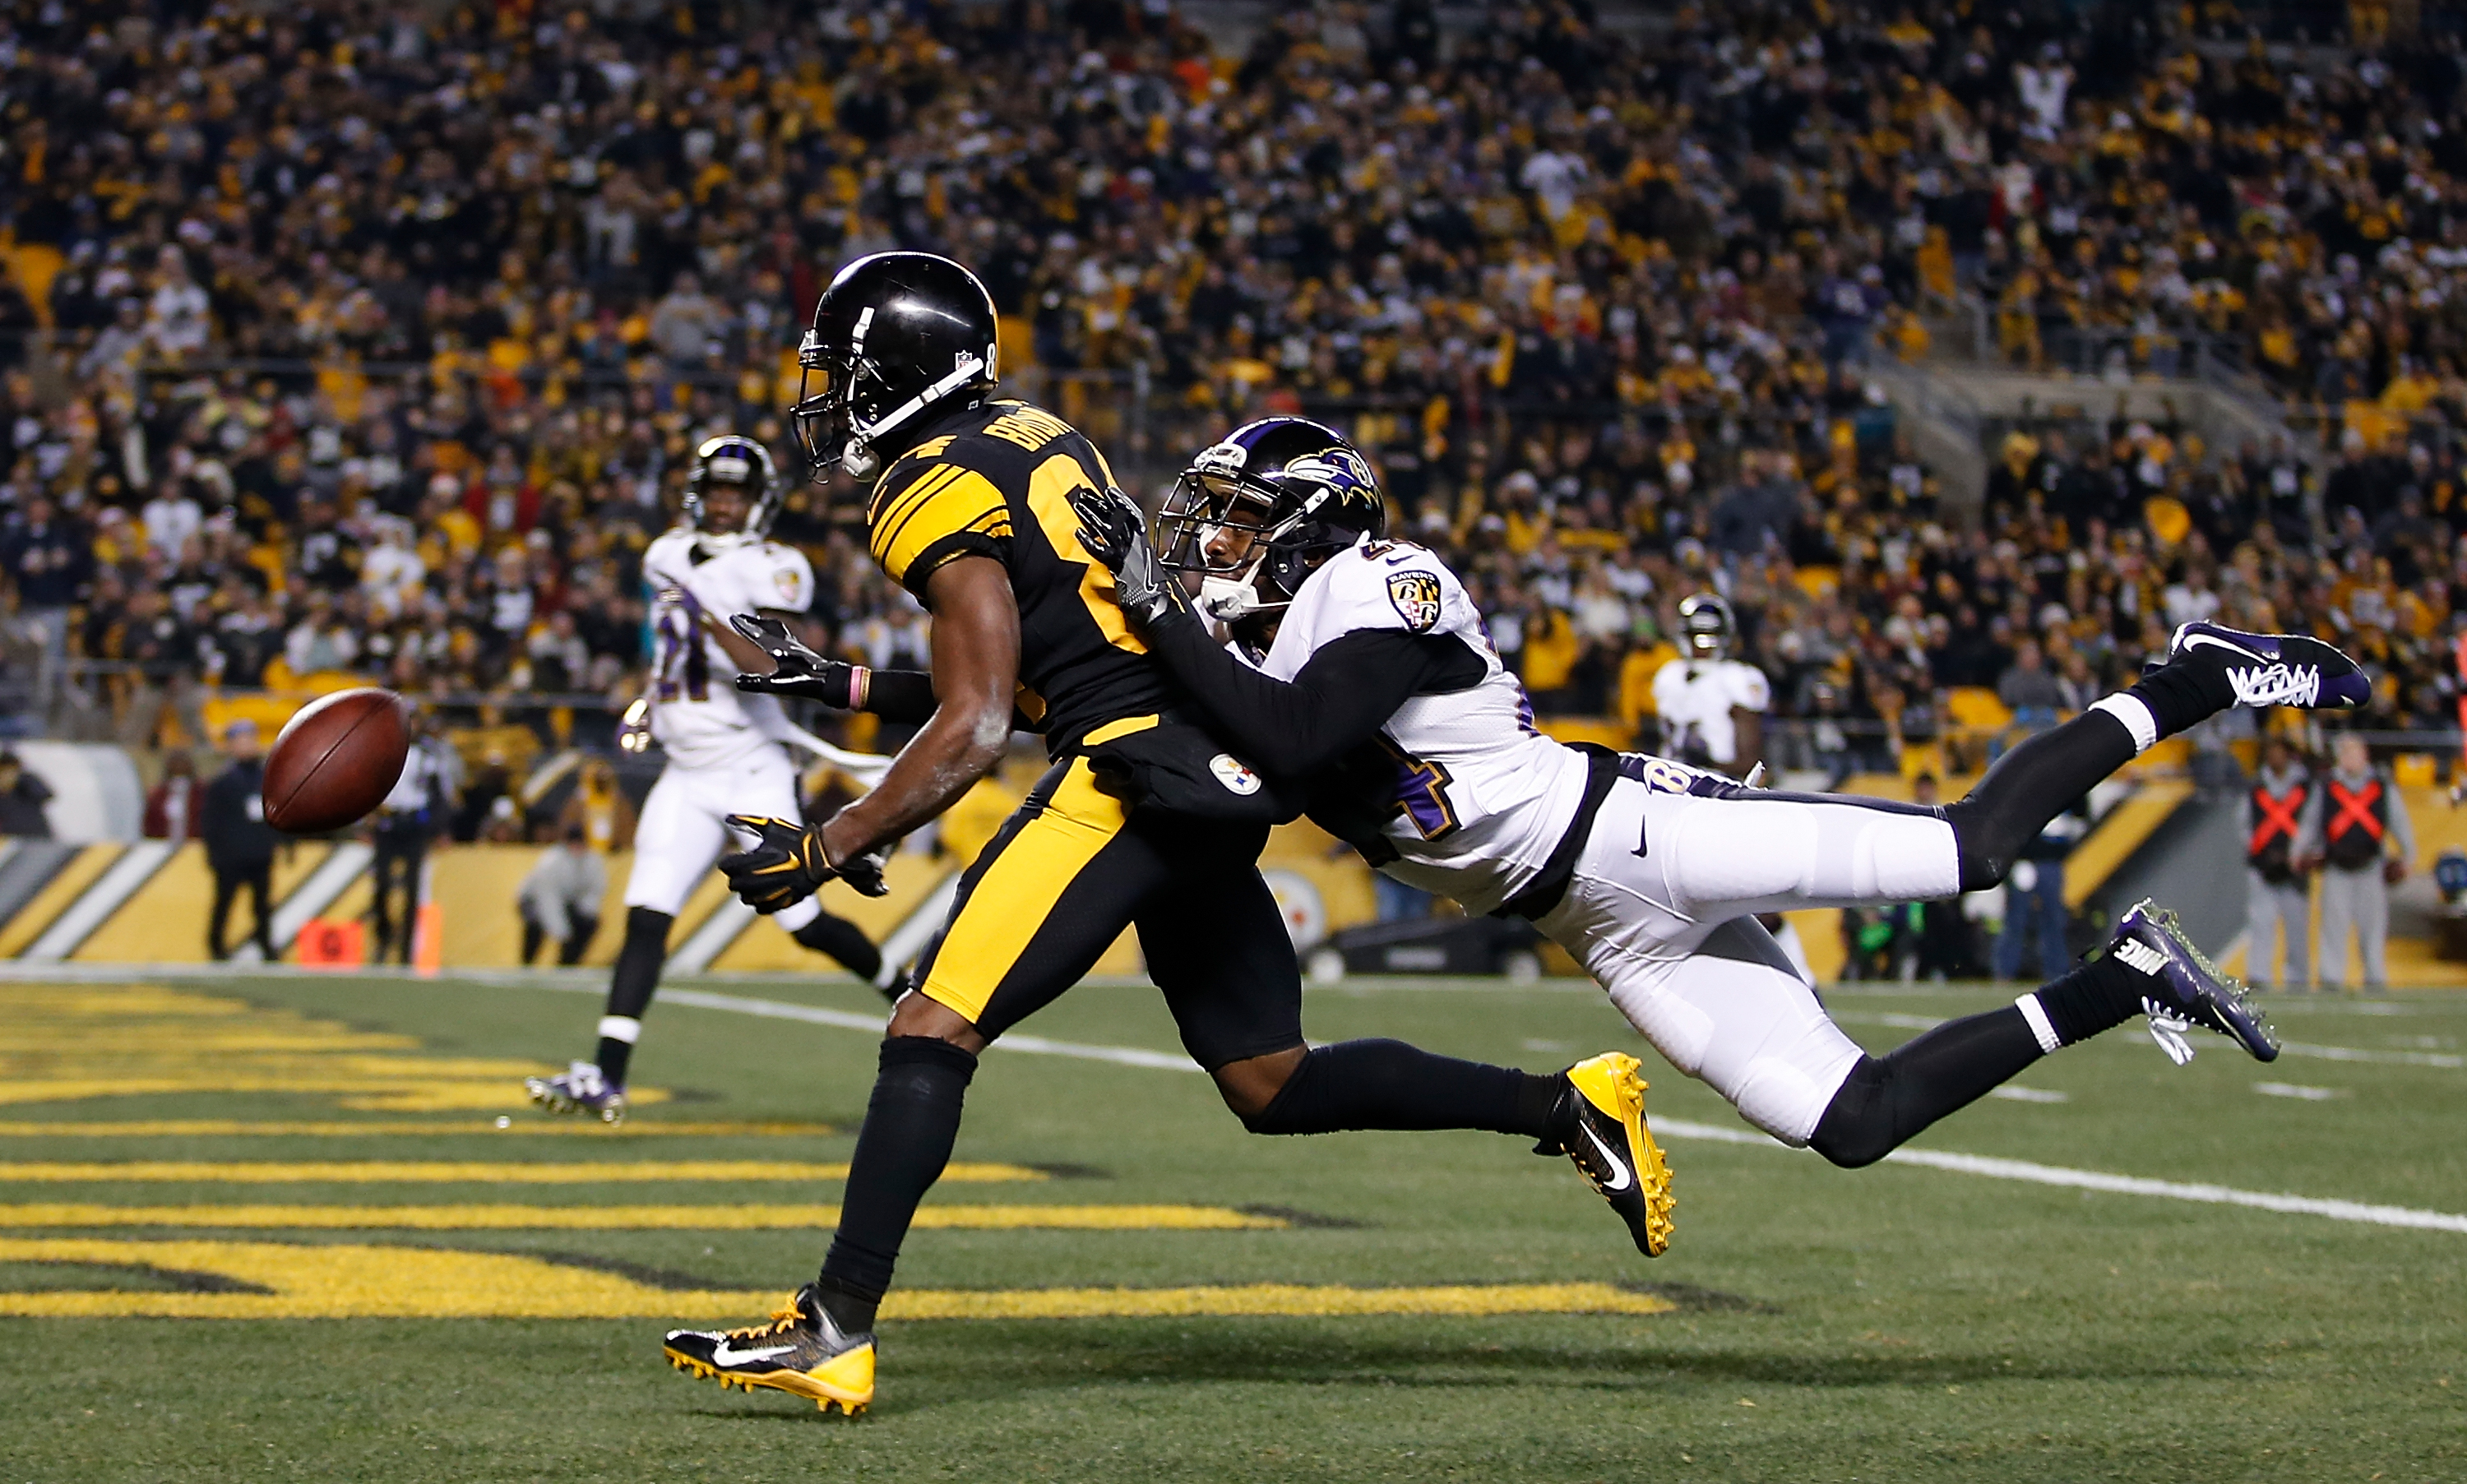 New Bills cornerback Shareece Wright breaks up a touchdown pass for the Steelers' Antonio Brown. (Photo by Justin K. Aller/Getty Images)